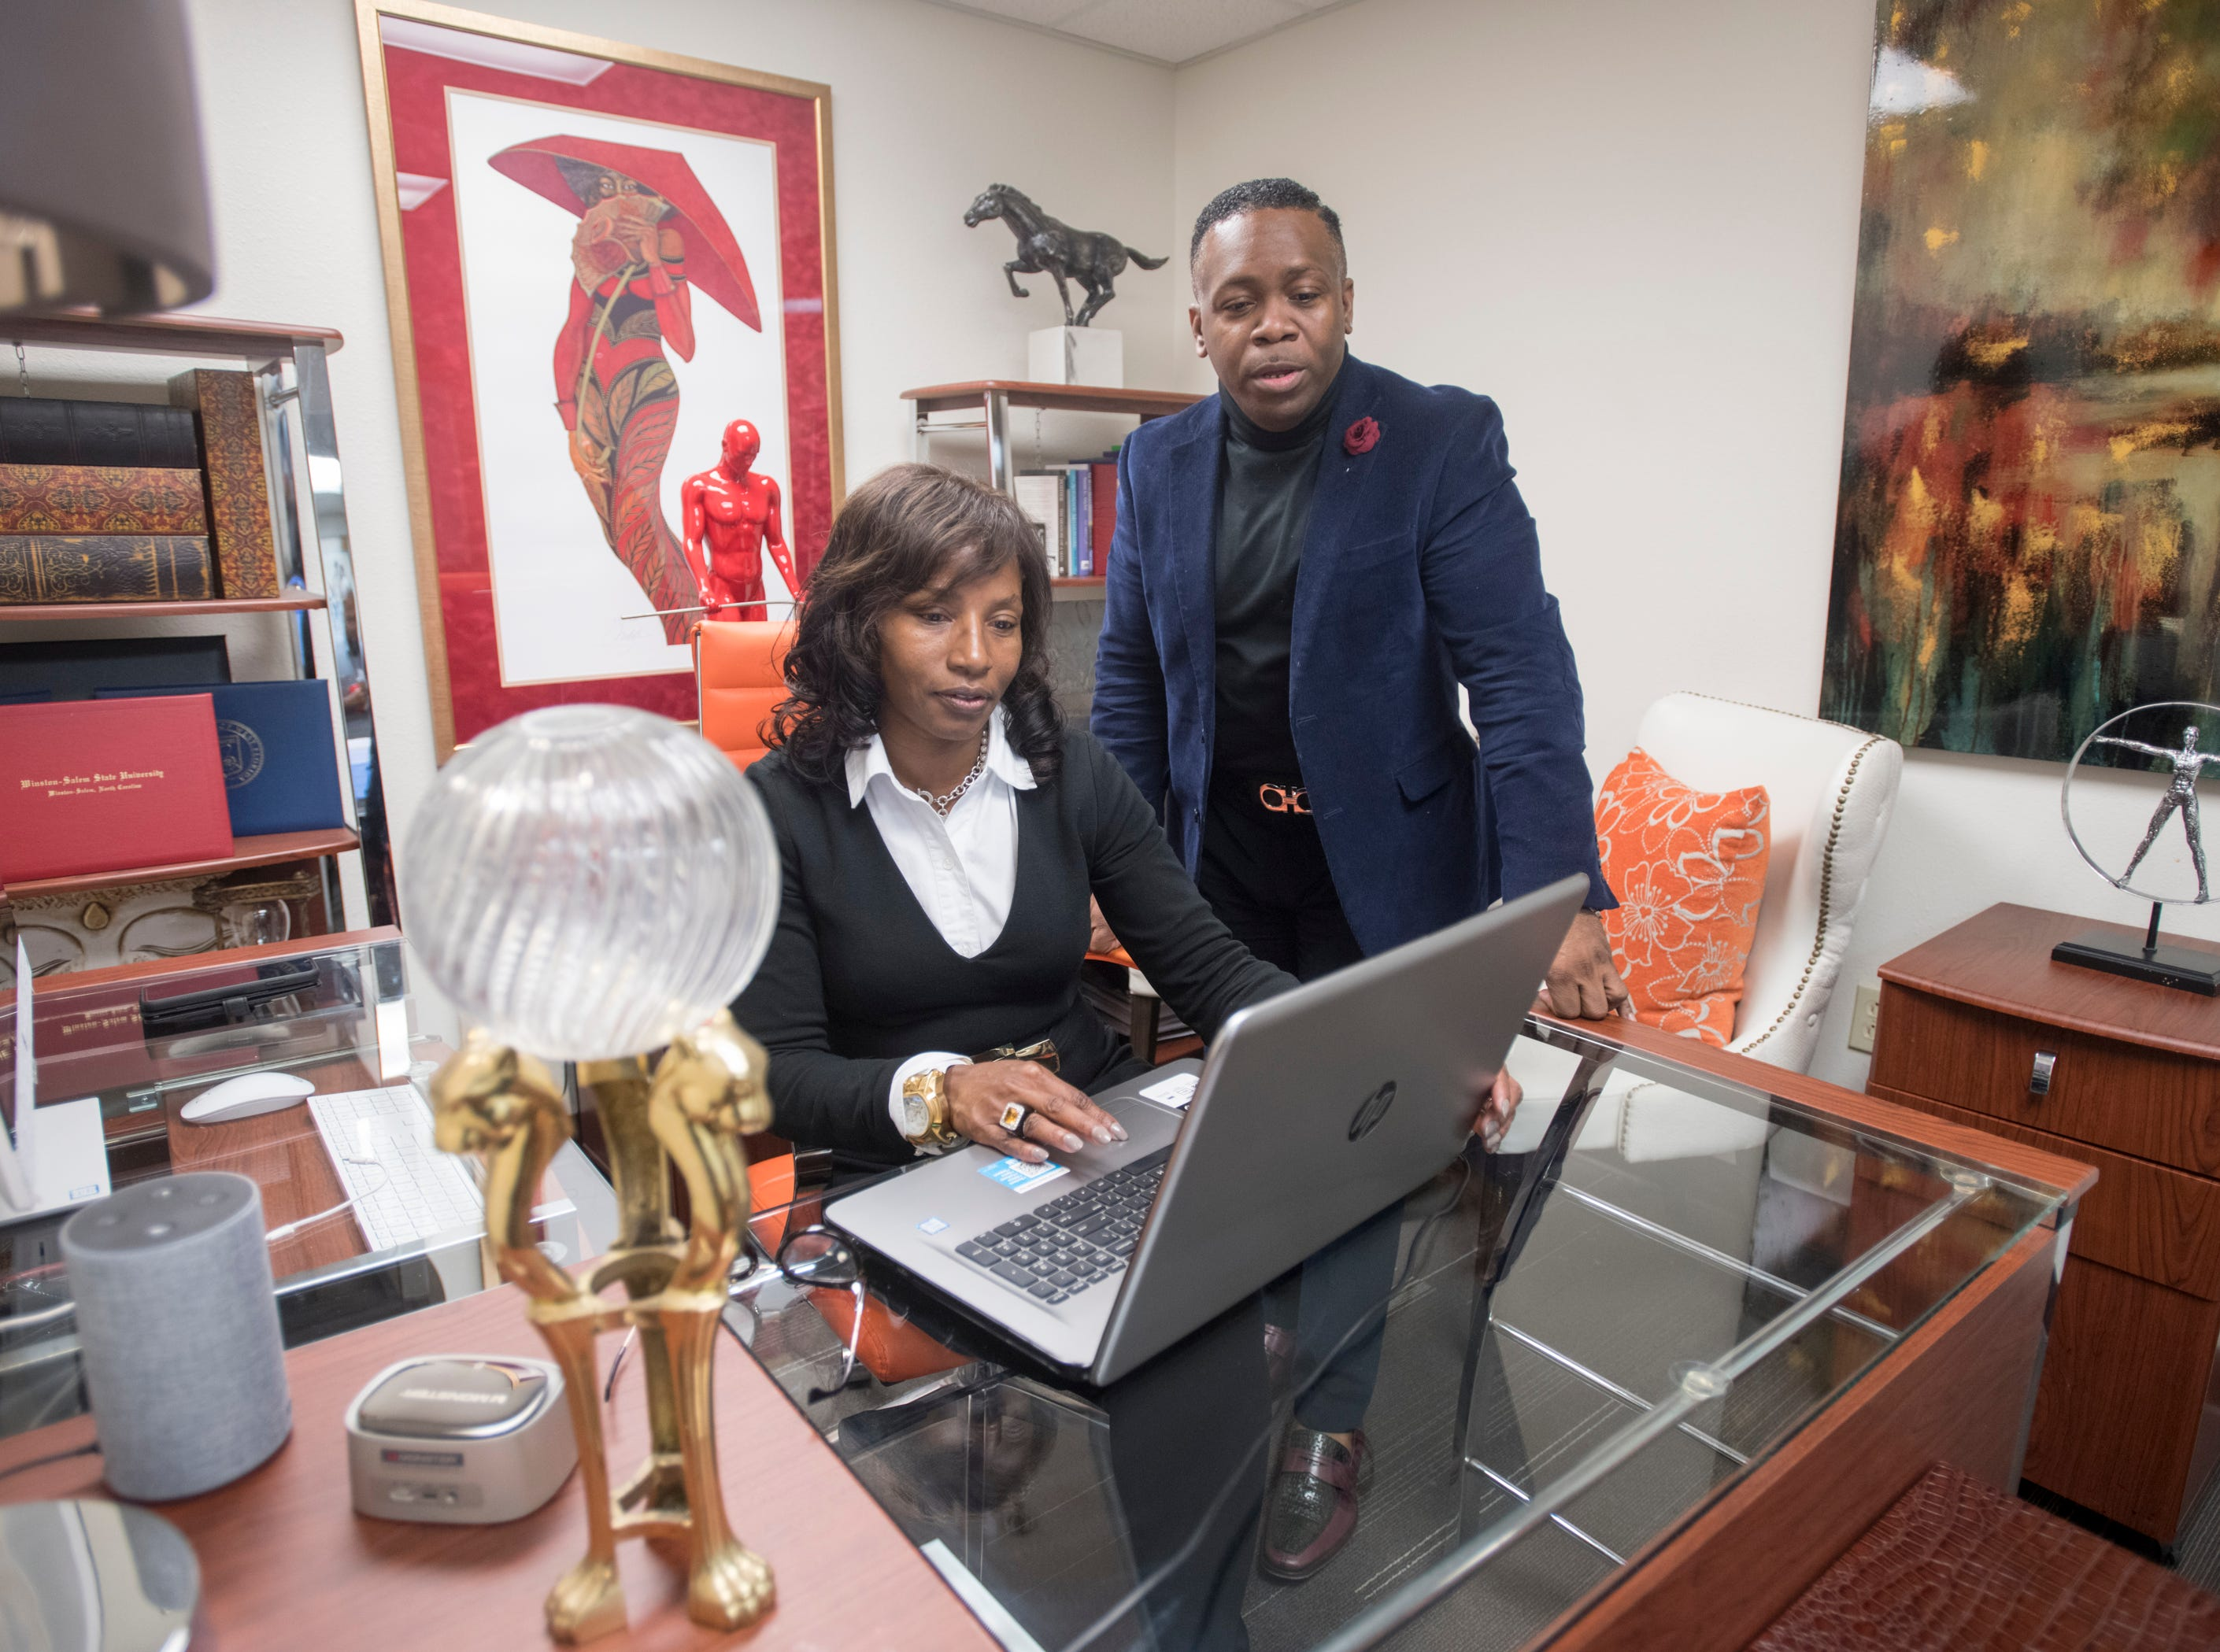 Jessica Griffen, chairwoman & CEO, and John Rigsby, president, work in the Urban Development Center in downtown Pensacola on Monday, March 4, 2019.